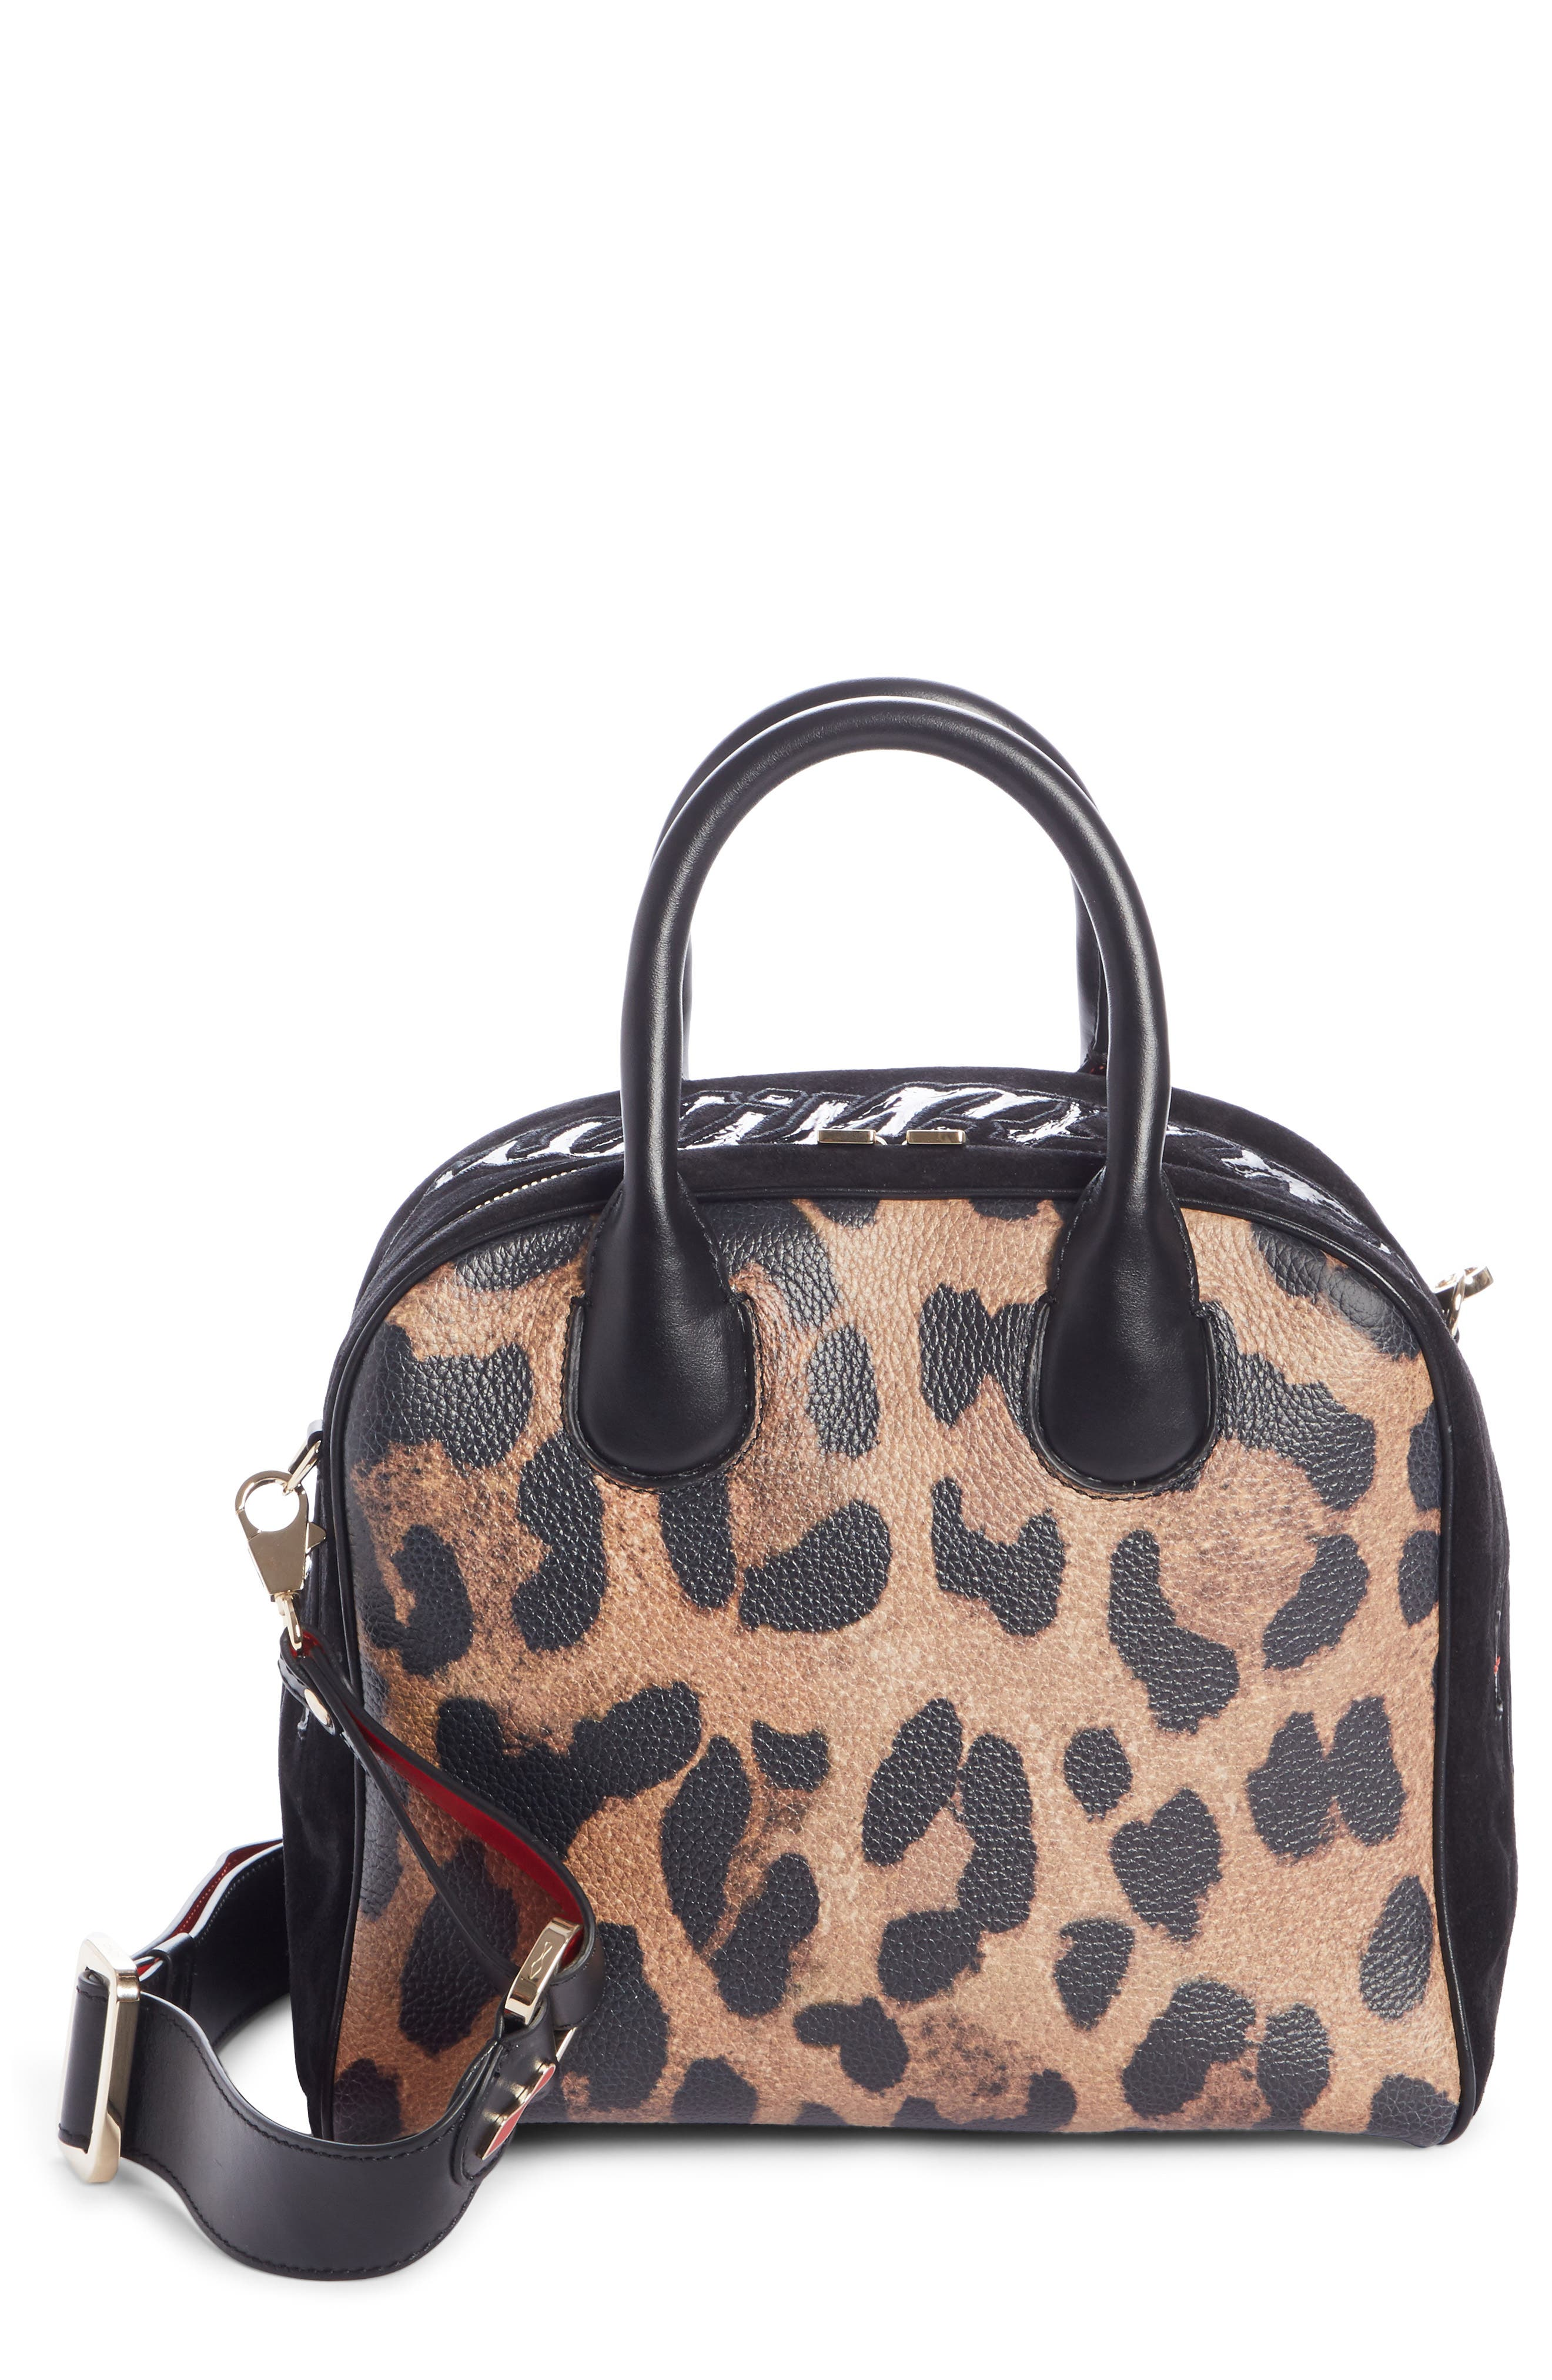 Marie Jane Small Leather & Suede Satchel, Main, color, BROWN/ BLACK/ BLACK